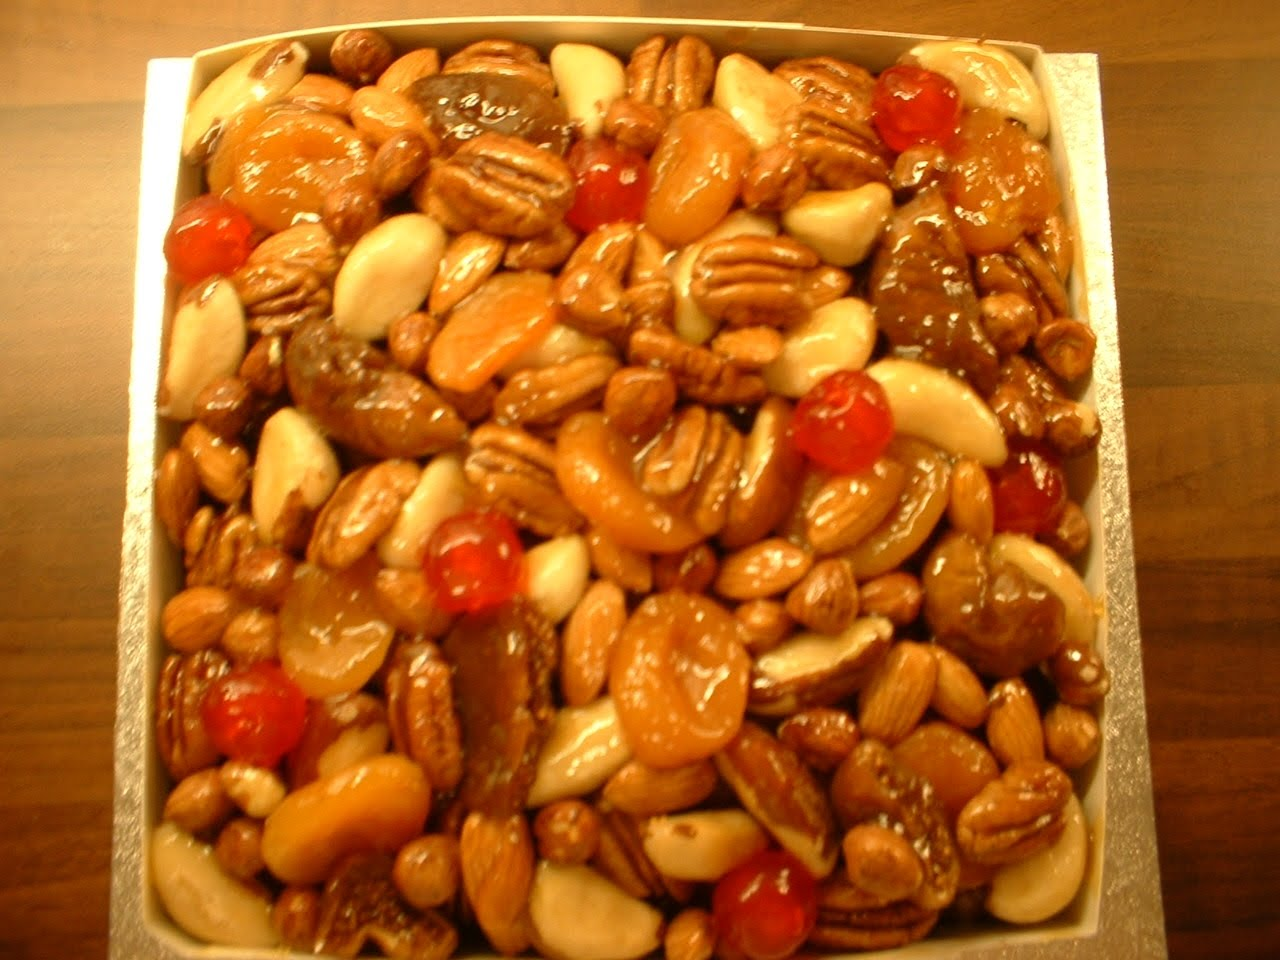 Christmas cake decoration with fruit and nuts - Glazed Fruit And Nut Christmas Cake